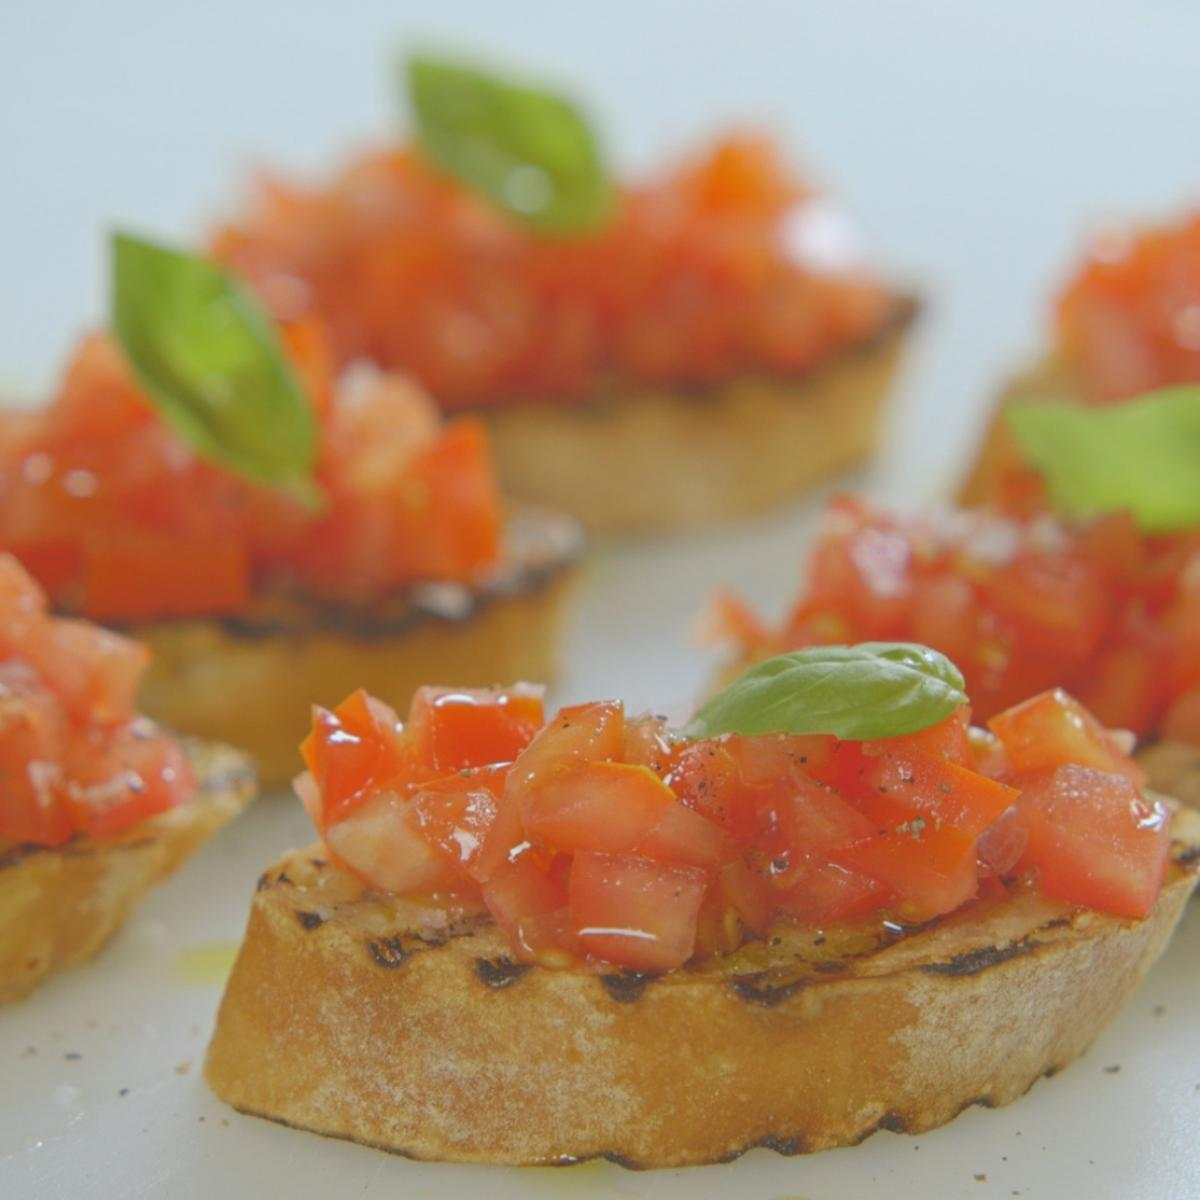 Cs bruschetta with tomato and basil